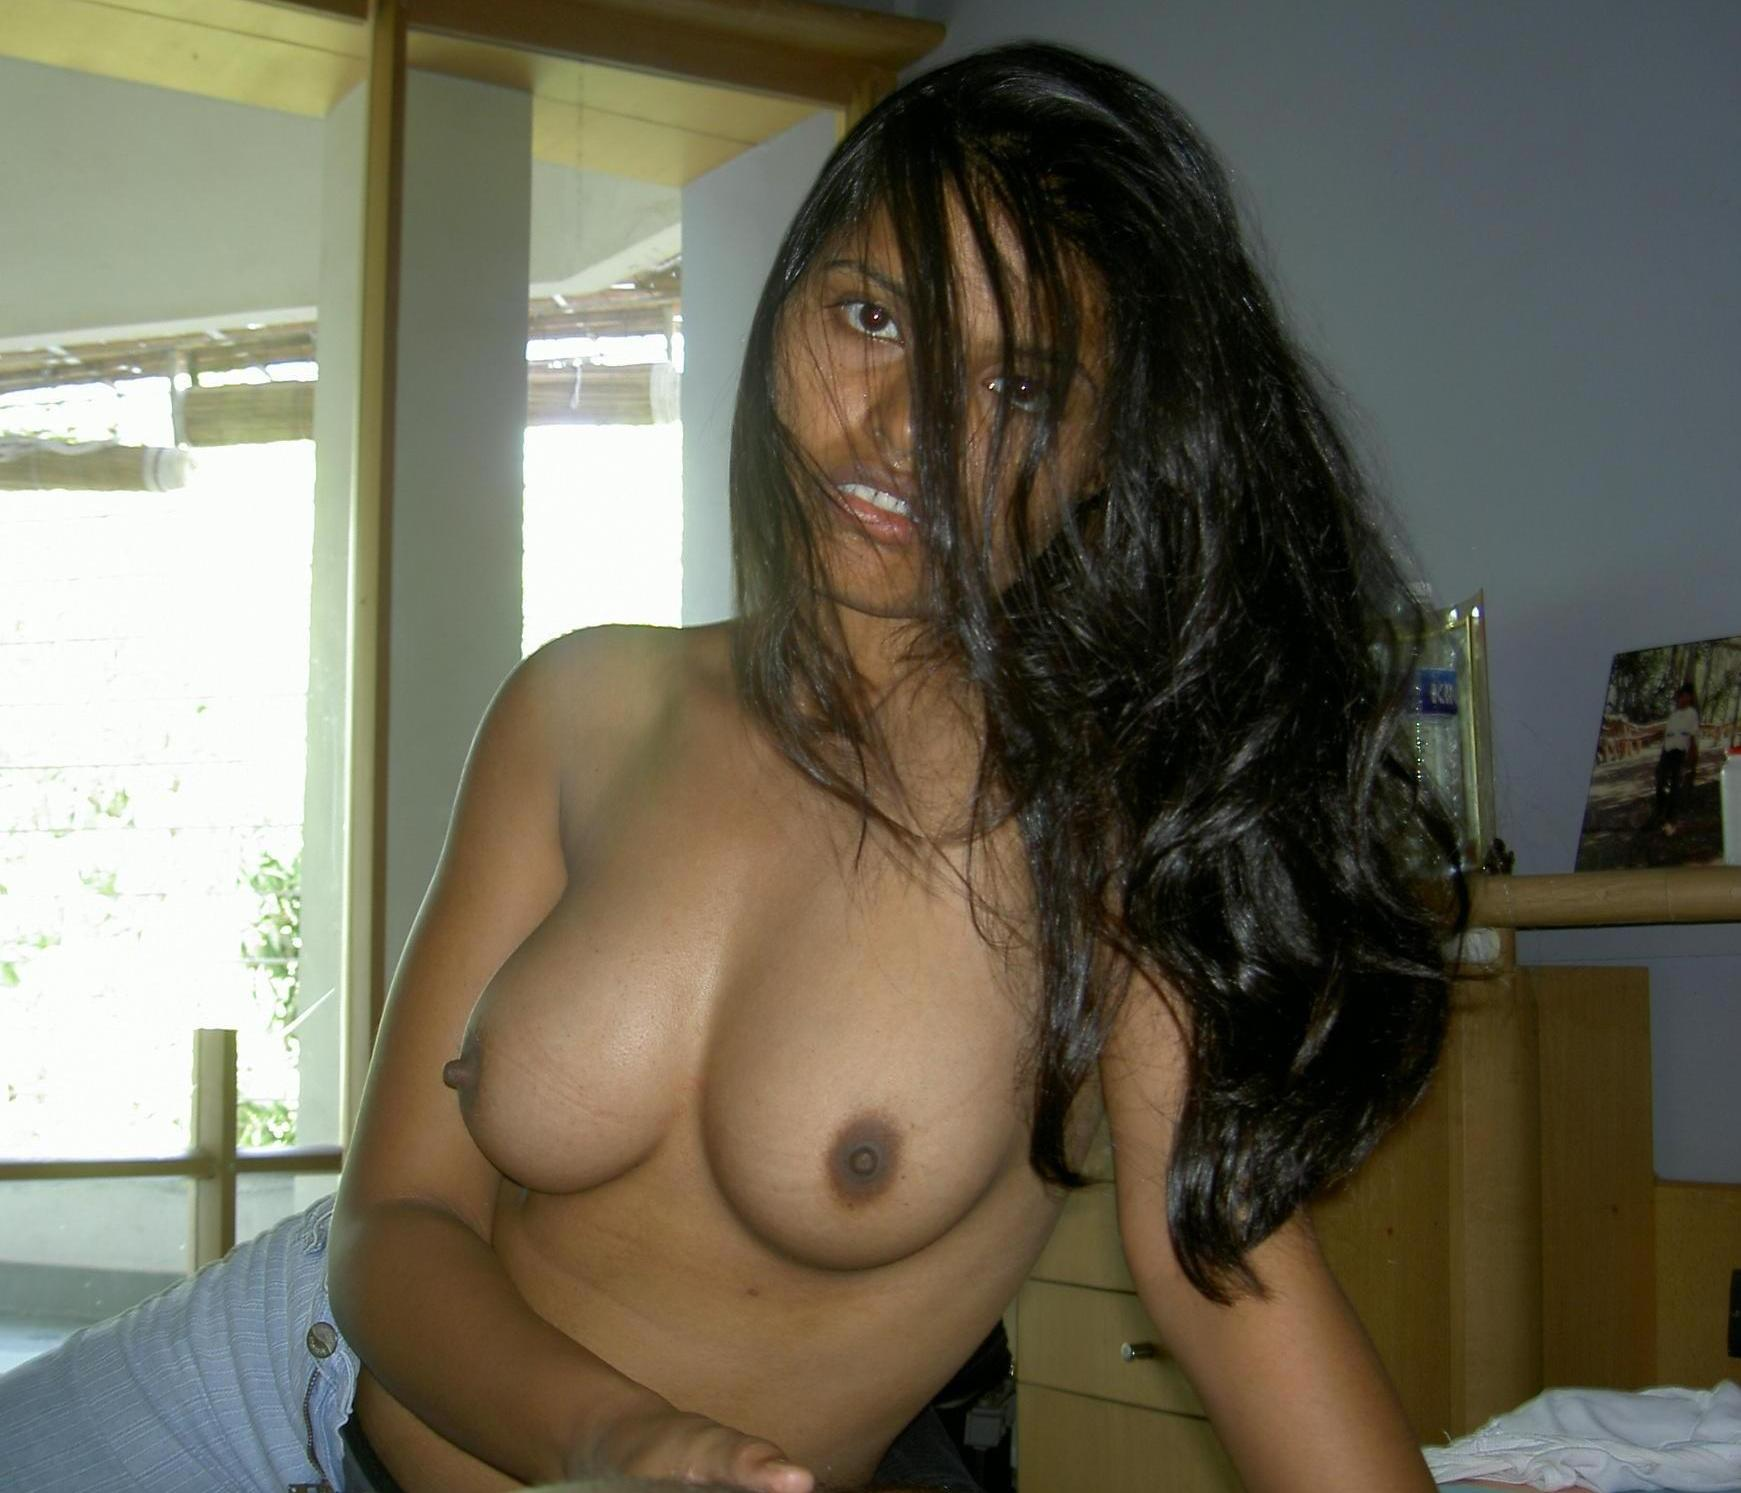 tamil xxx photos 16 - Hot Pics Tamil XXX Photos Showing Big Boobs Collection New